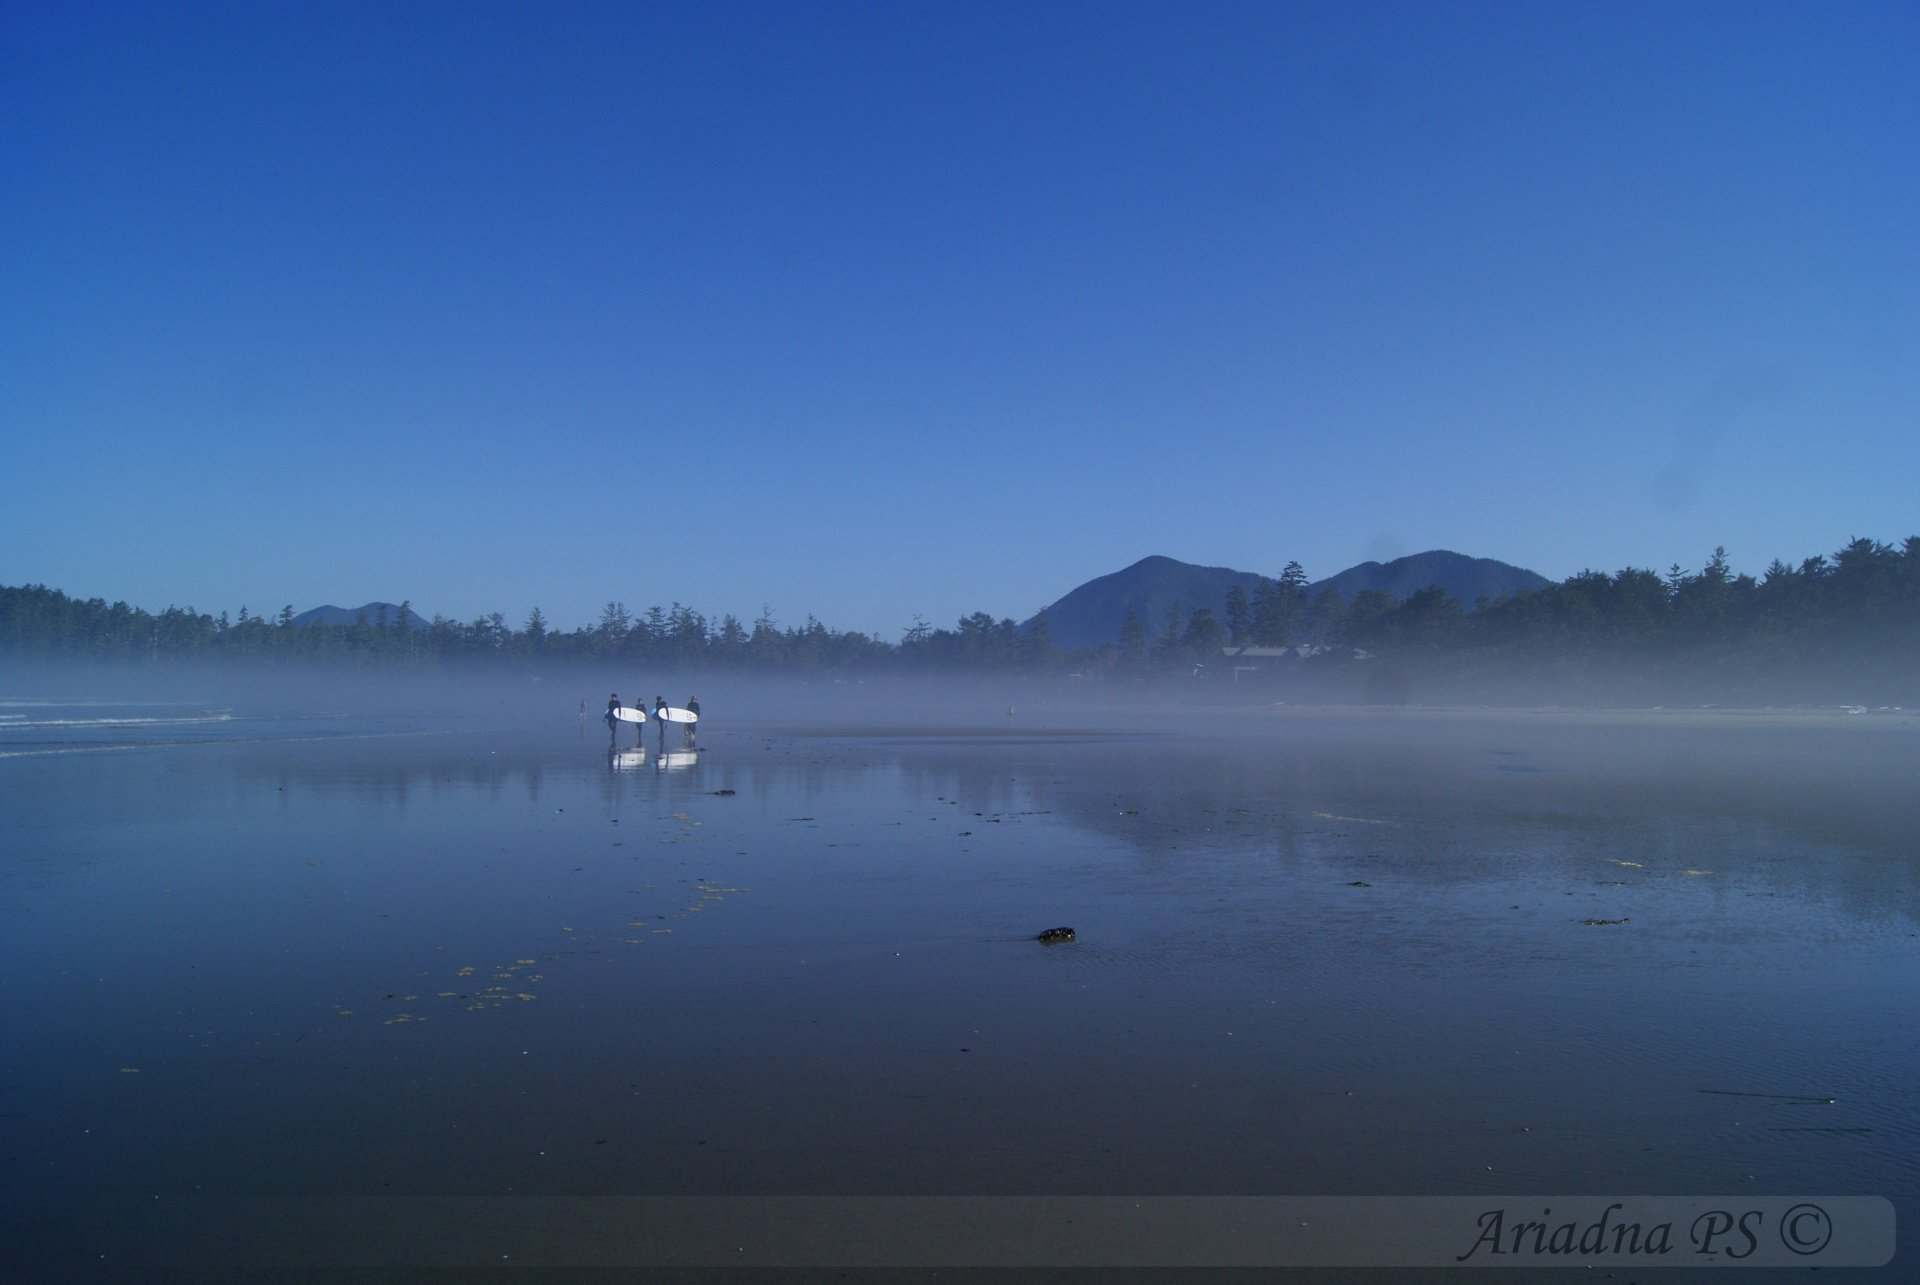 Ariadna PS's photo of Tofino (Chesterman Beach)